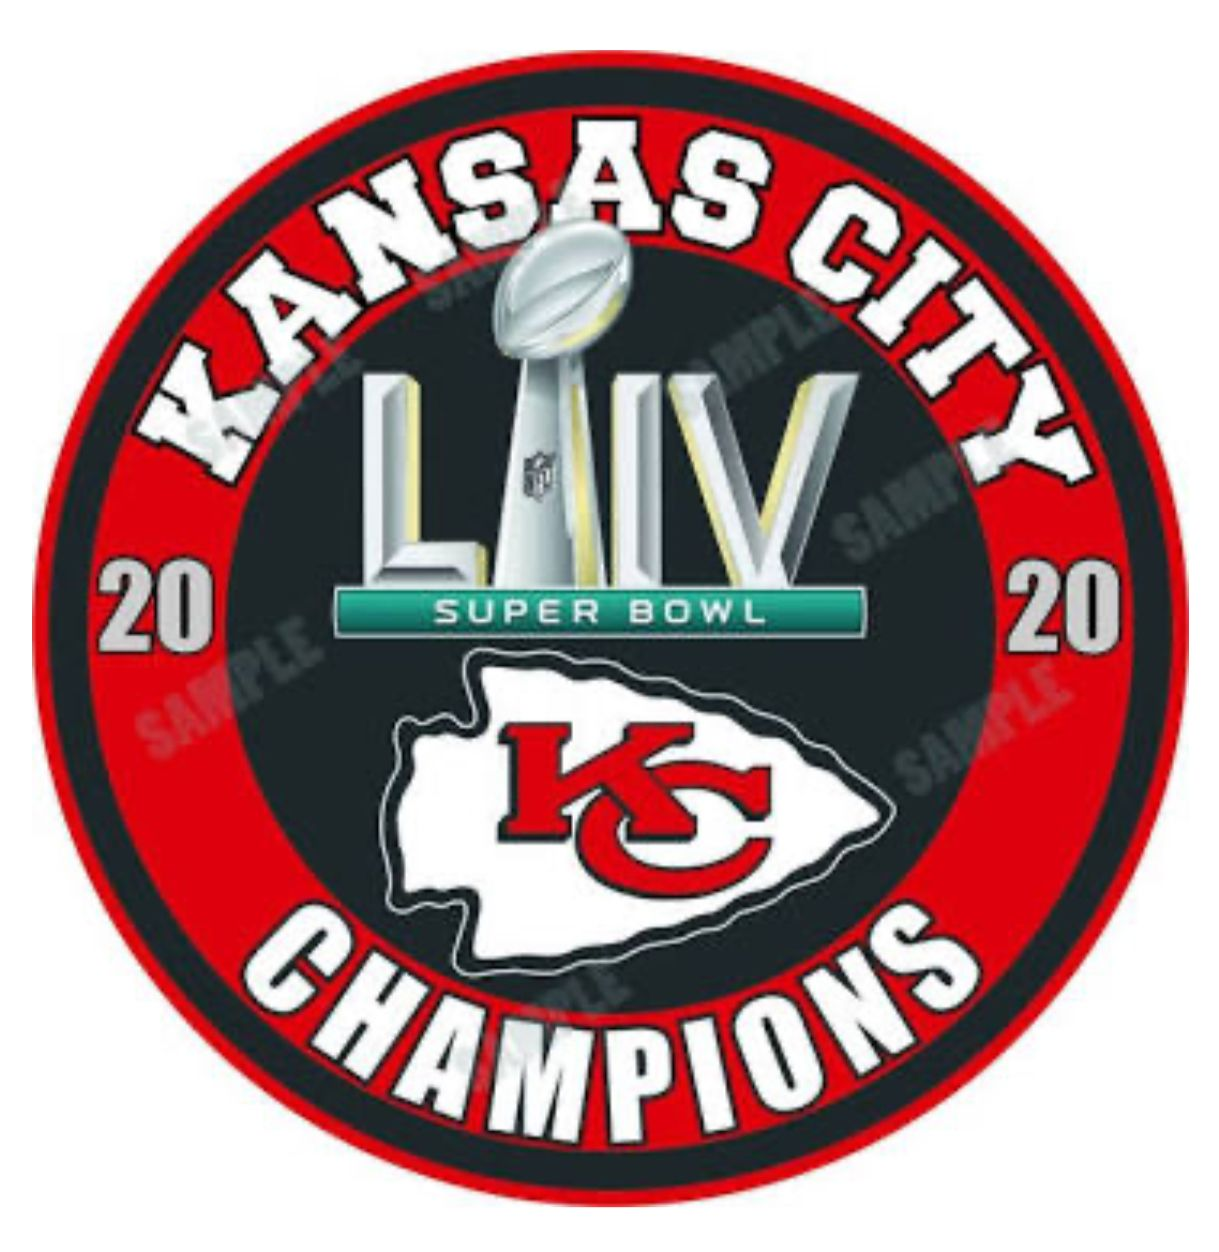 Pin By Kaime Pilatus On Kansas City Chiefs Arrowhead In 2020 Chiefs Super Bowl Kansas City Chiefs Logo Kansas City Chiefs